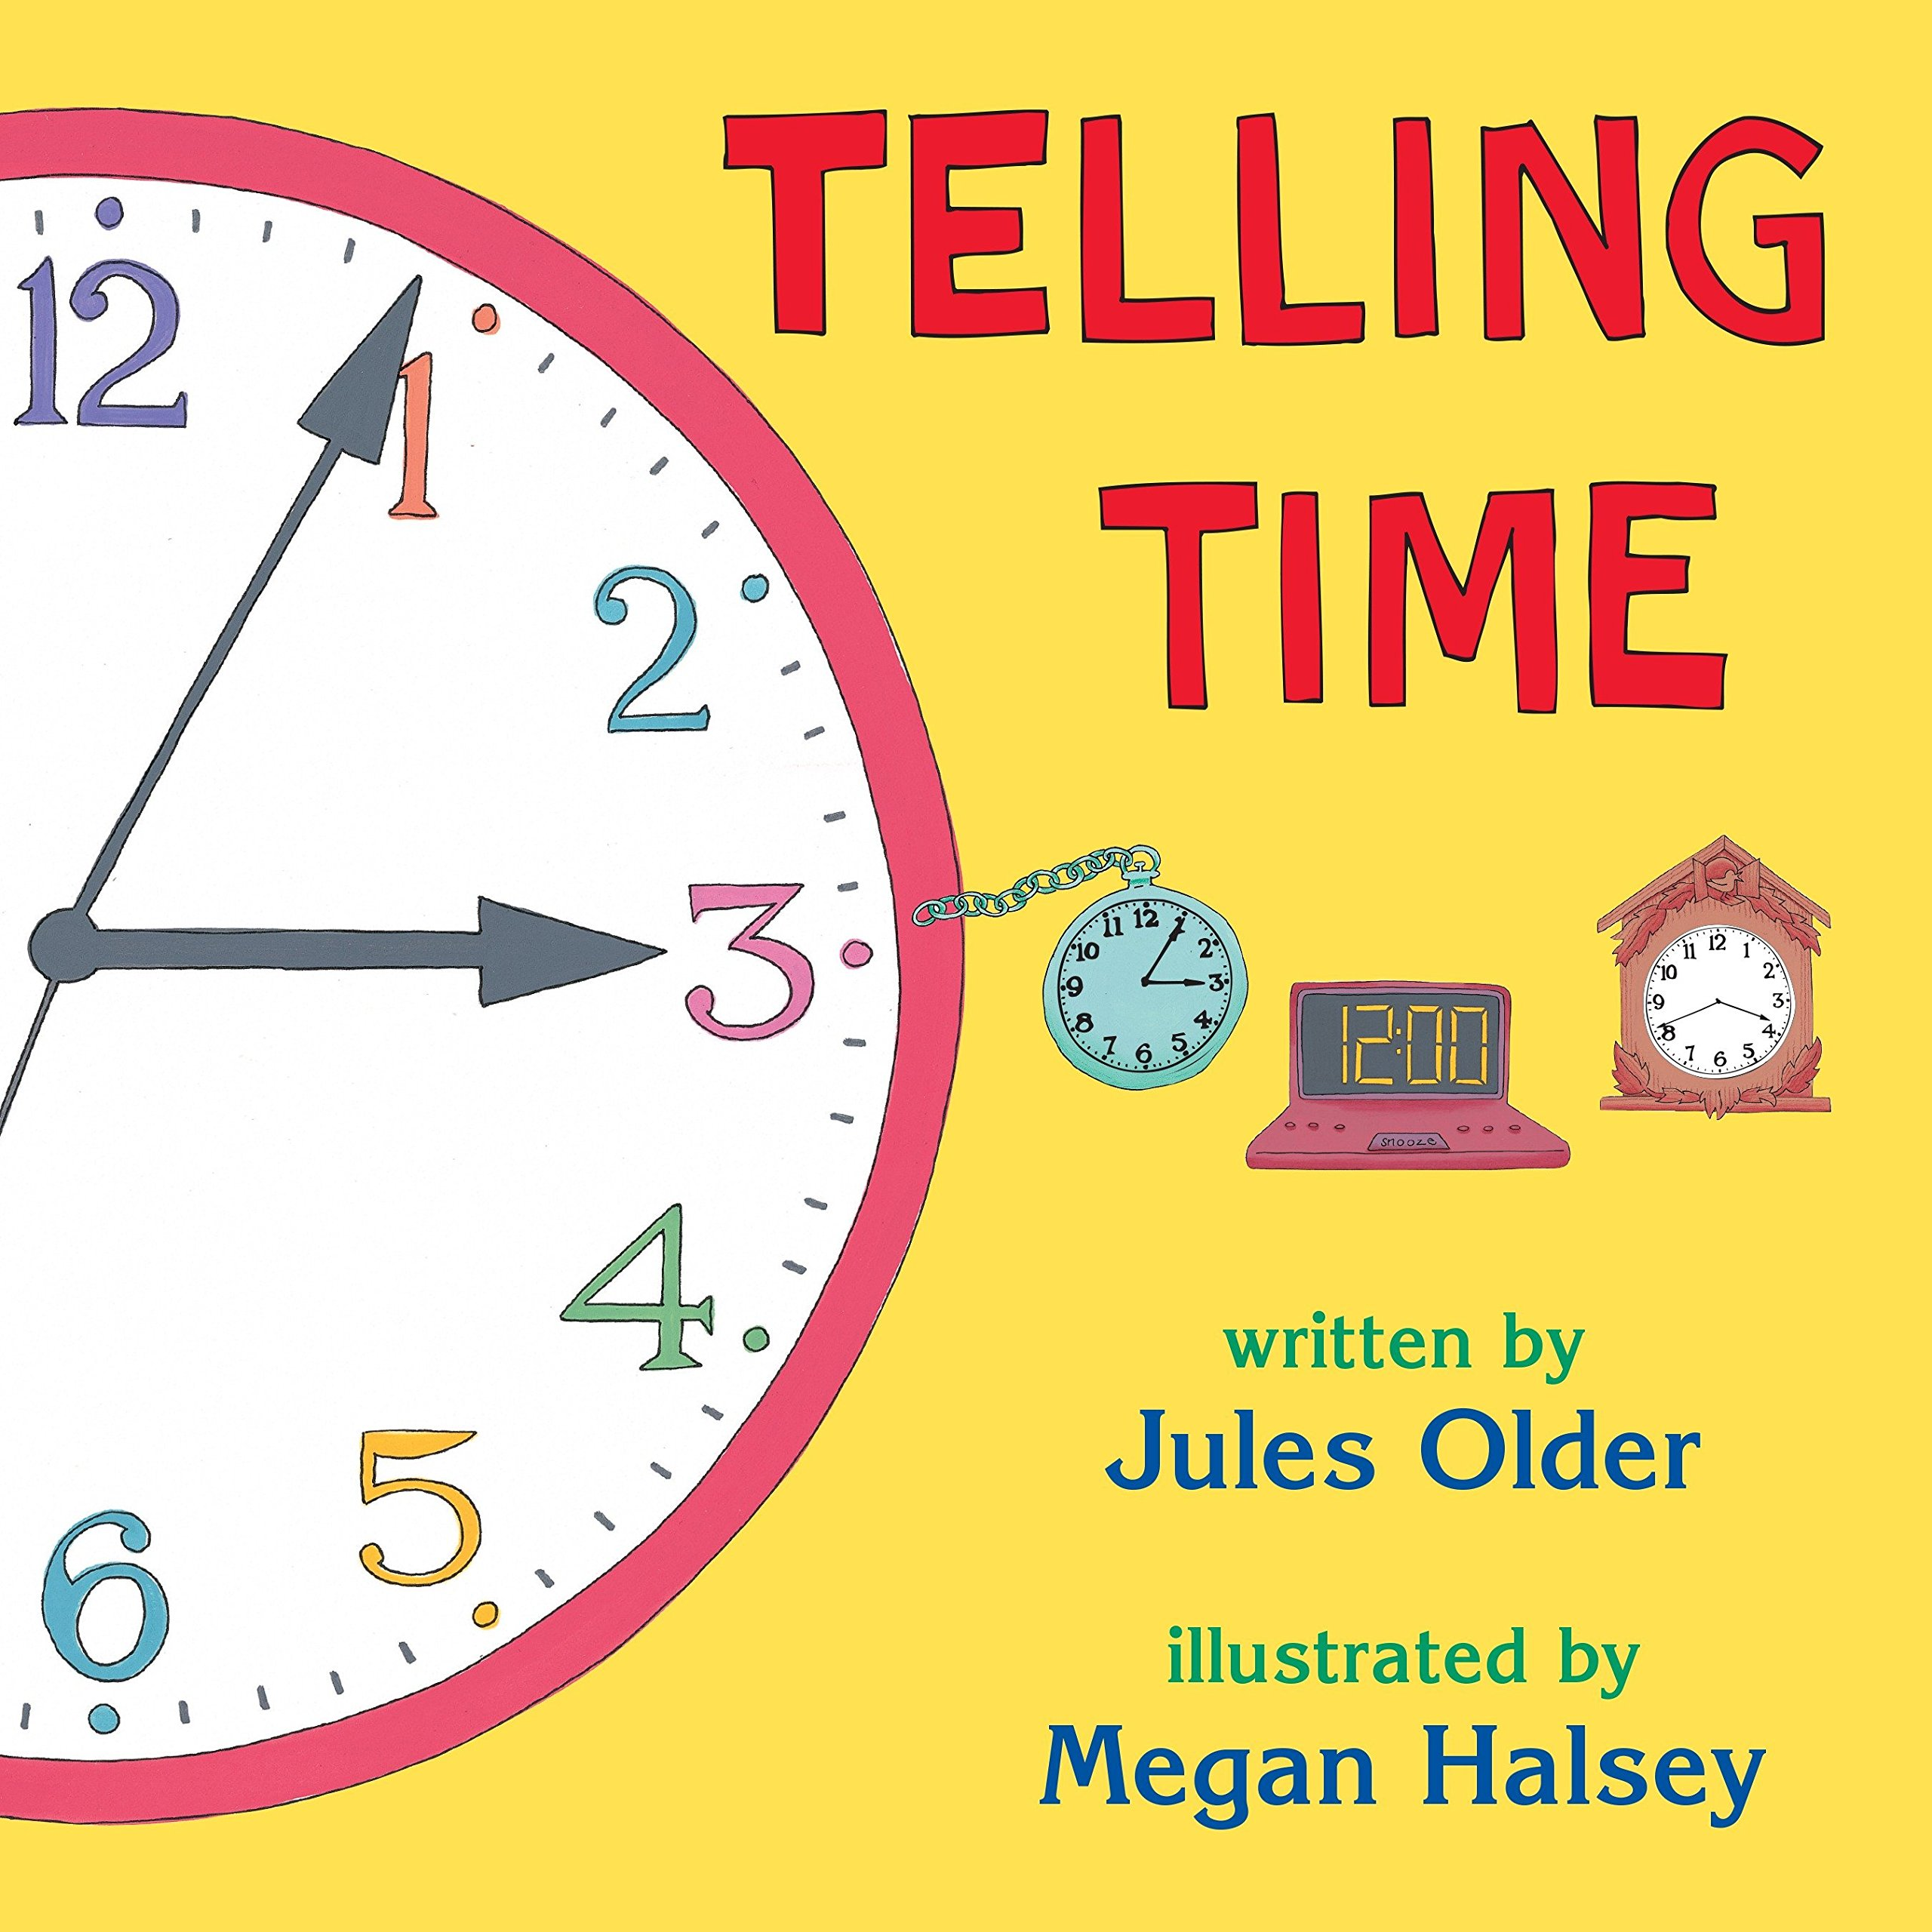 Amazon com: Telling Time: How to Tell Time on Digital and